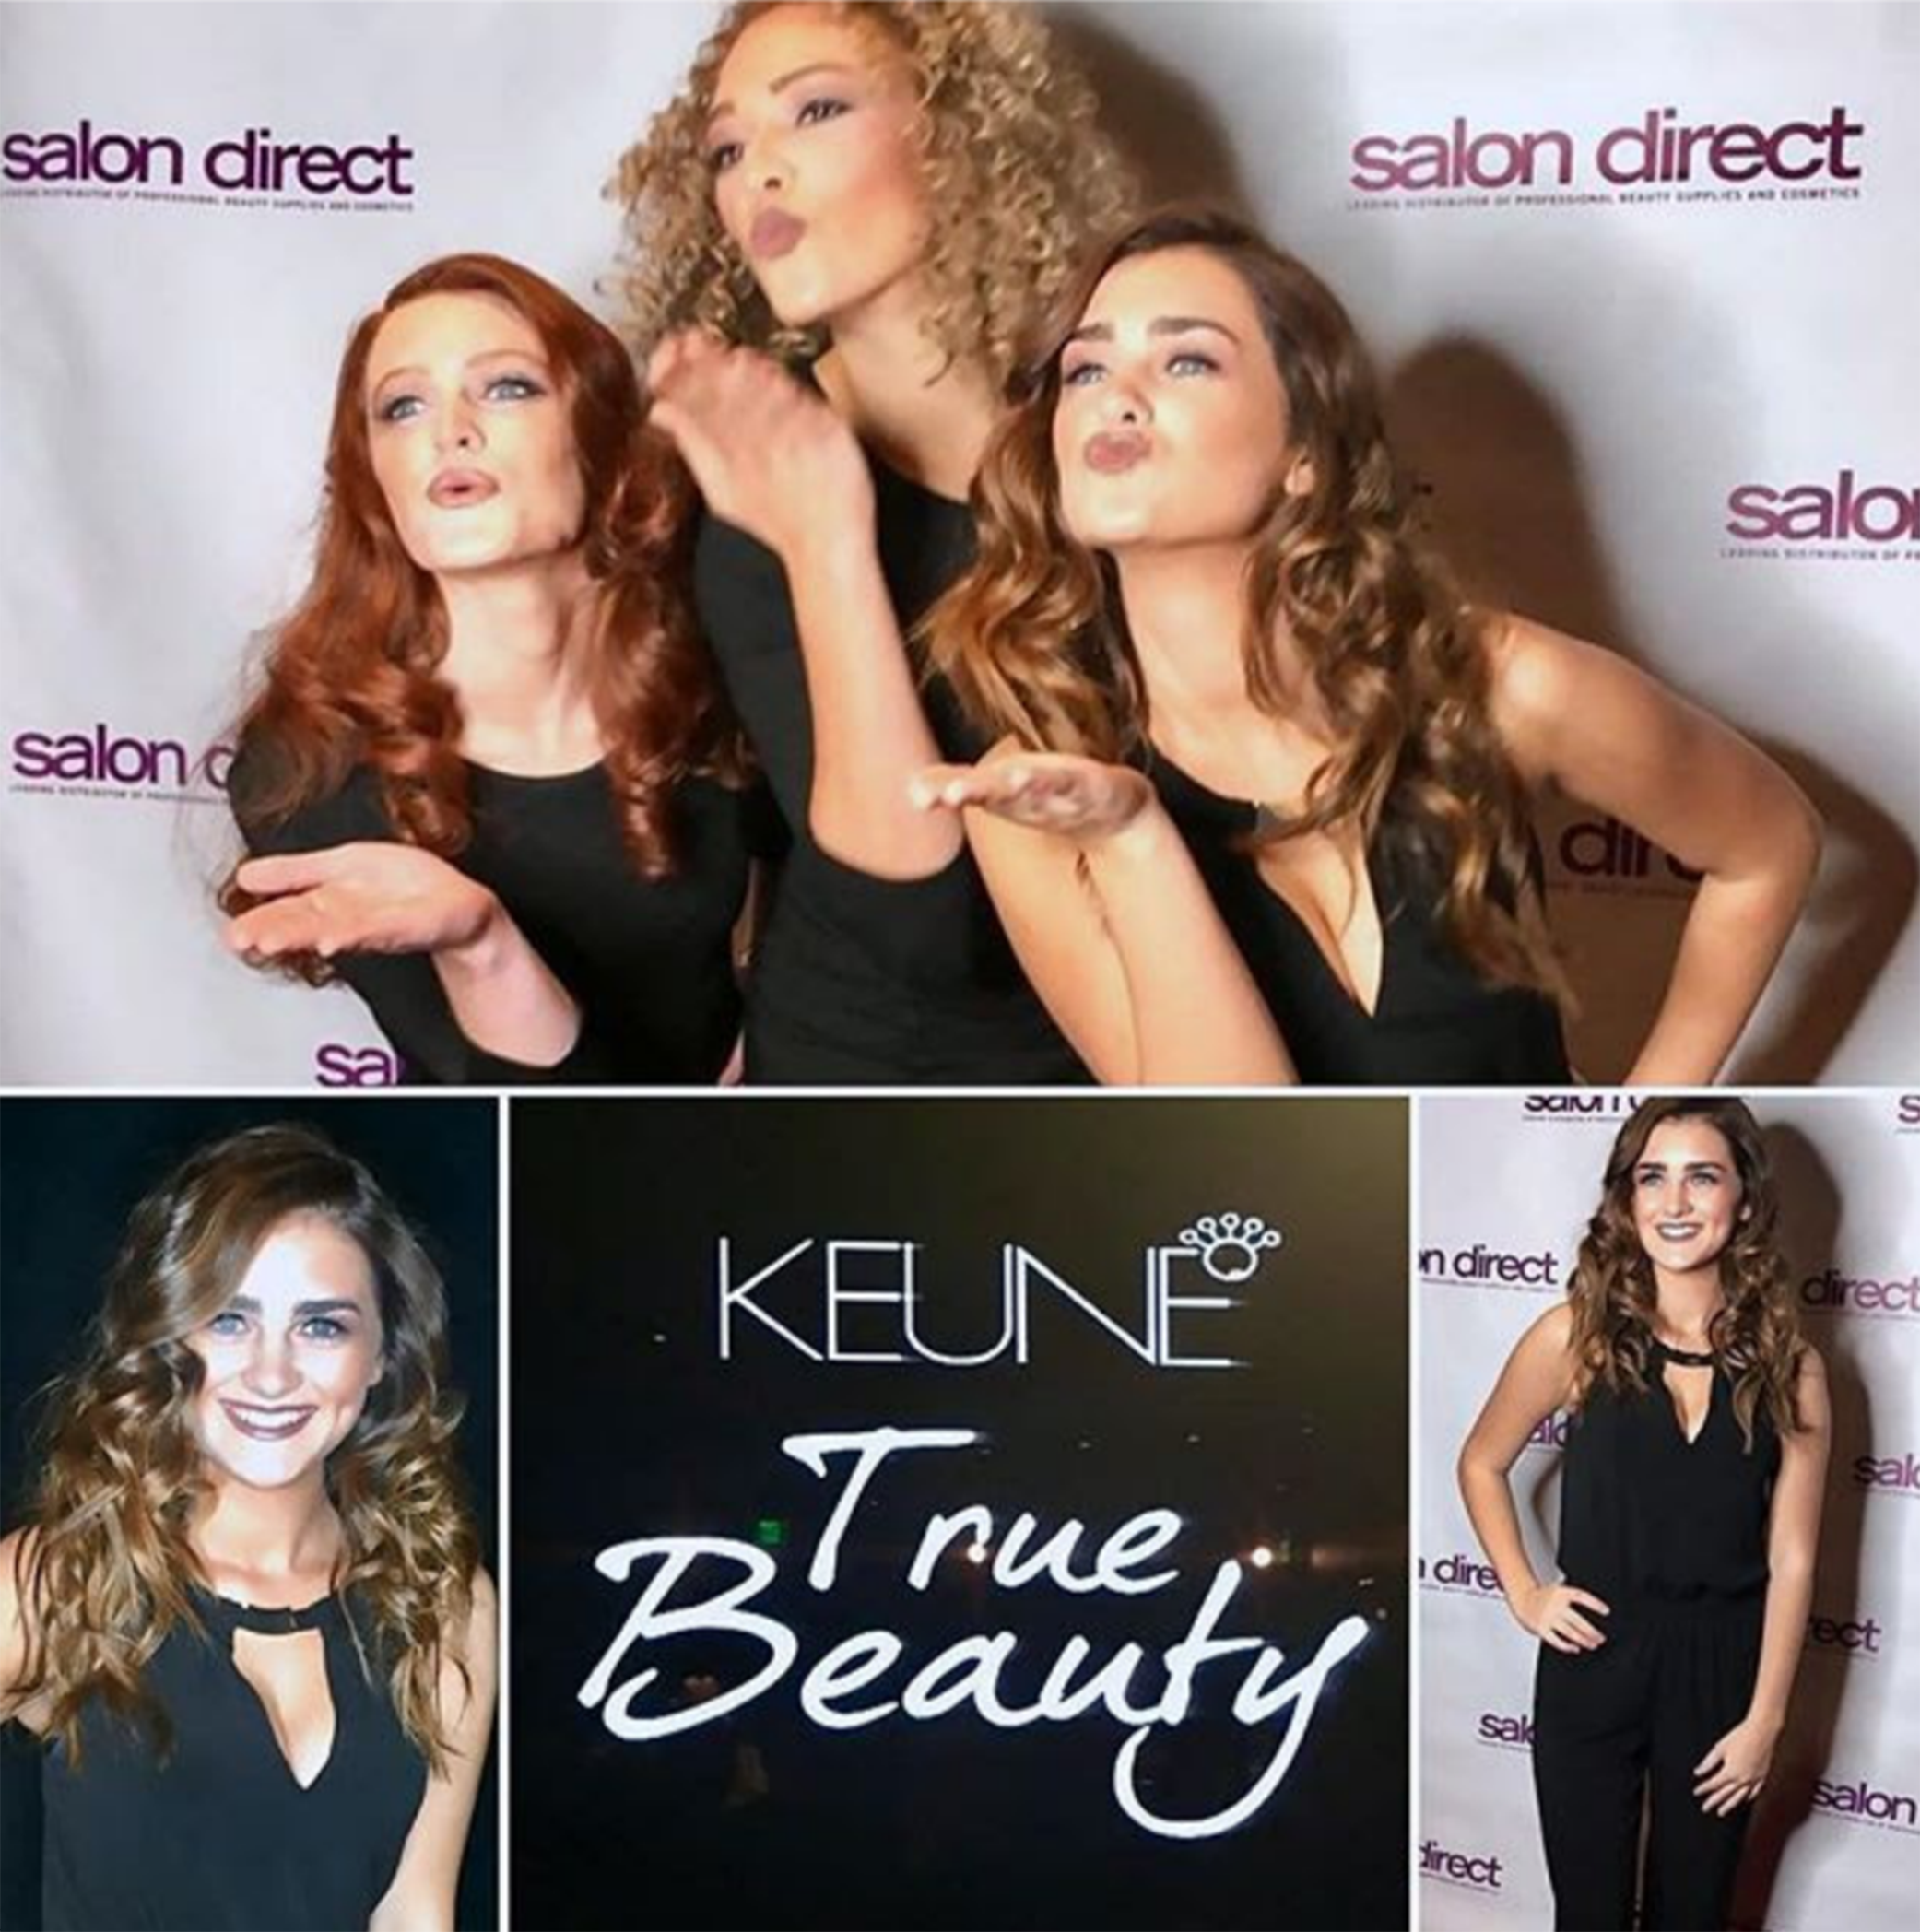 Barbizon Modeling Rebecca Books Keune True Beauty Campaign |